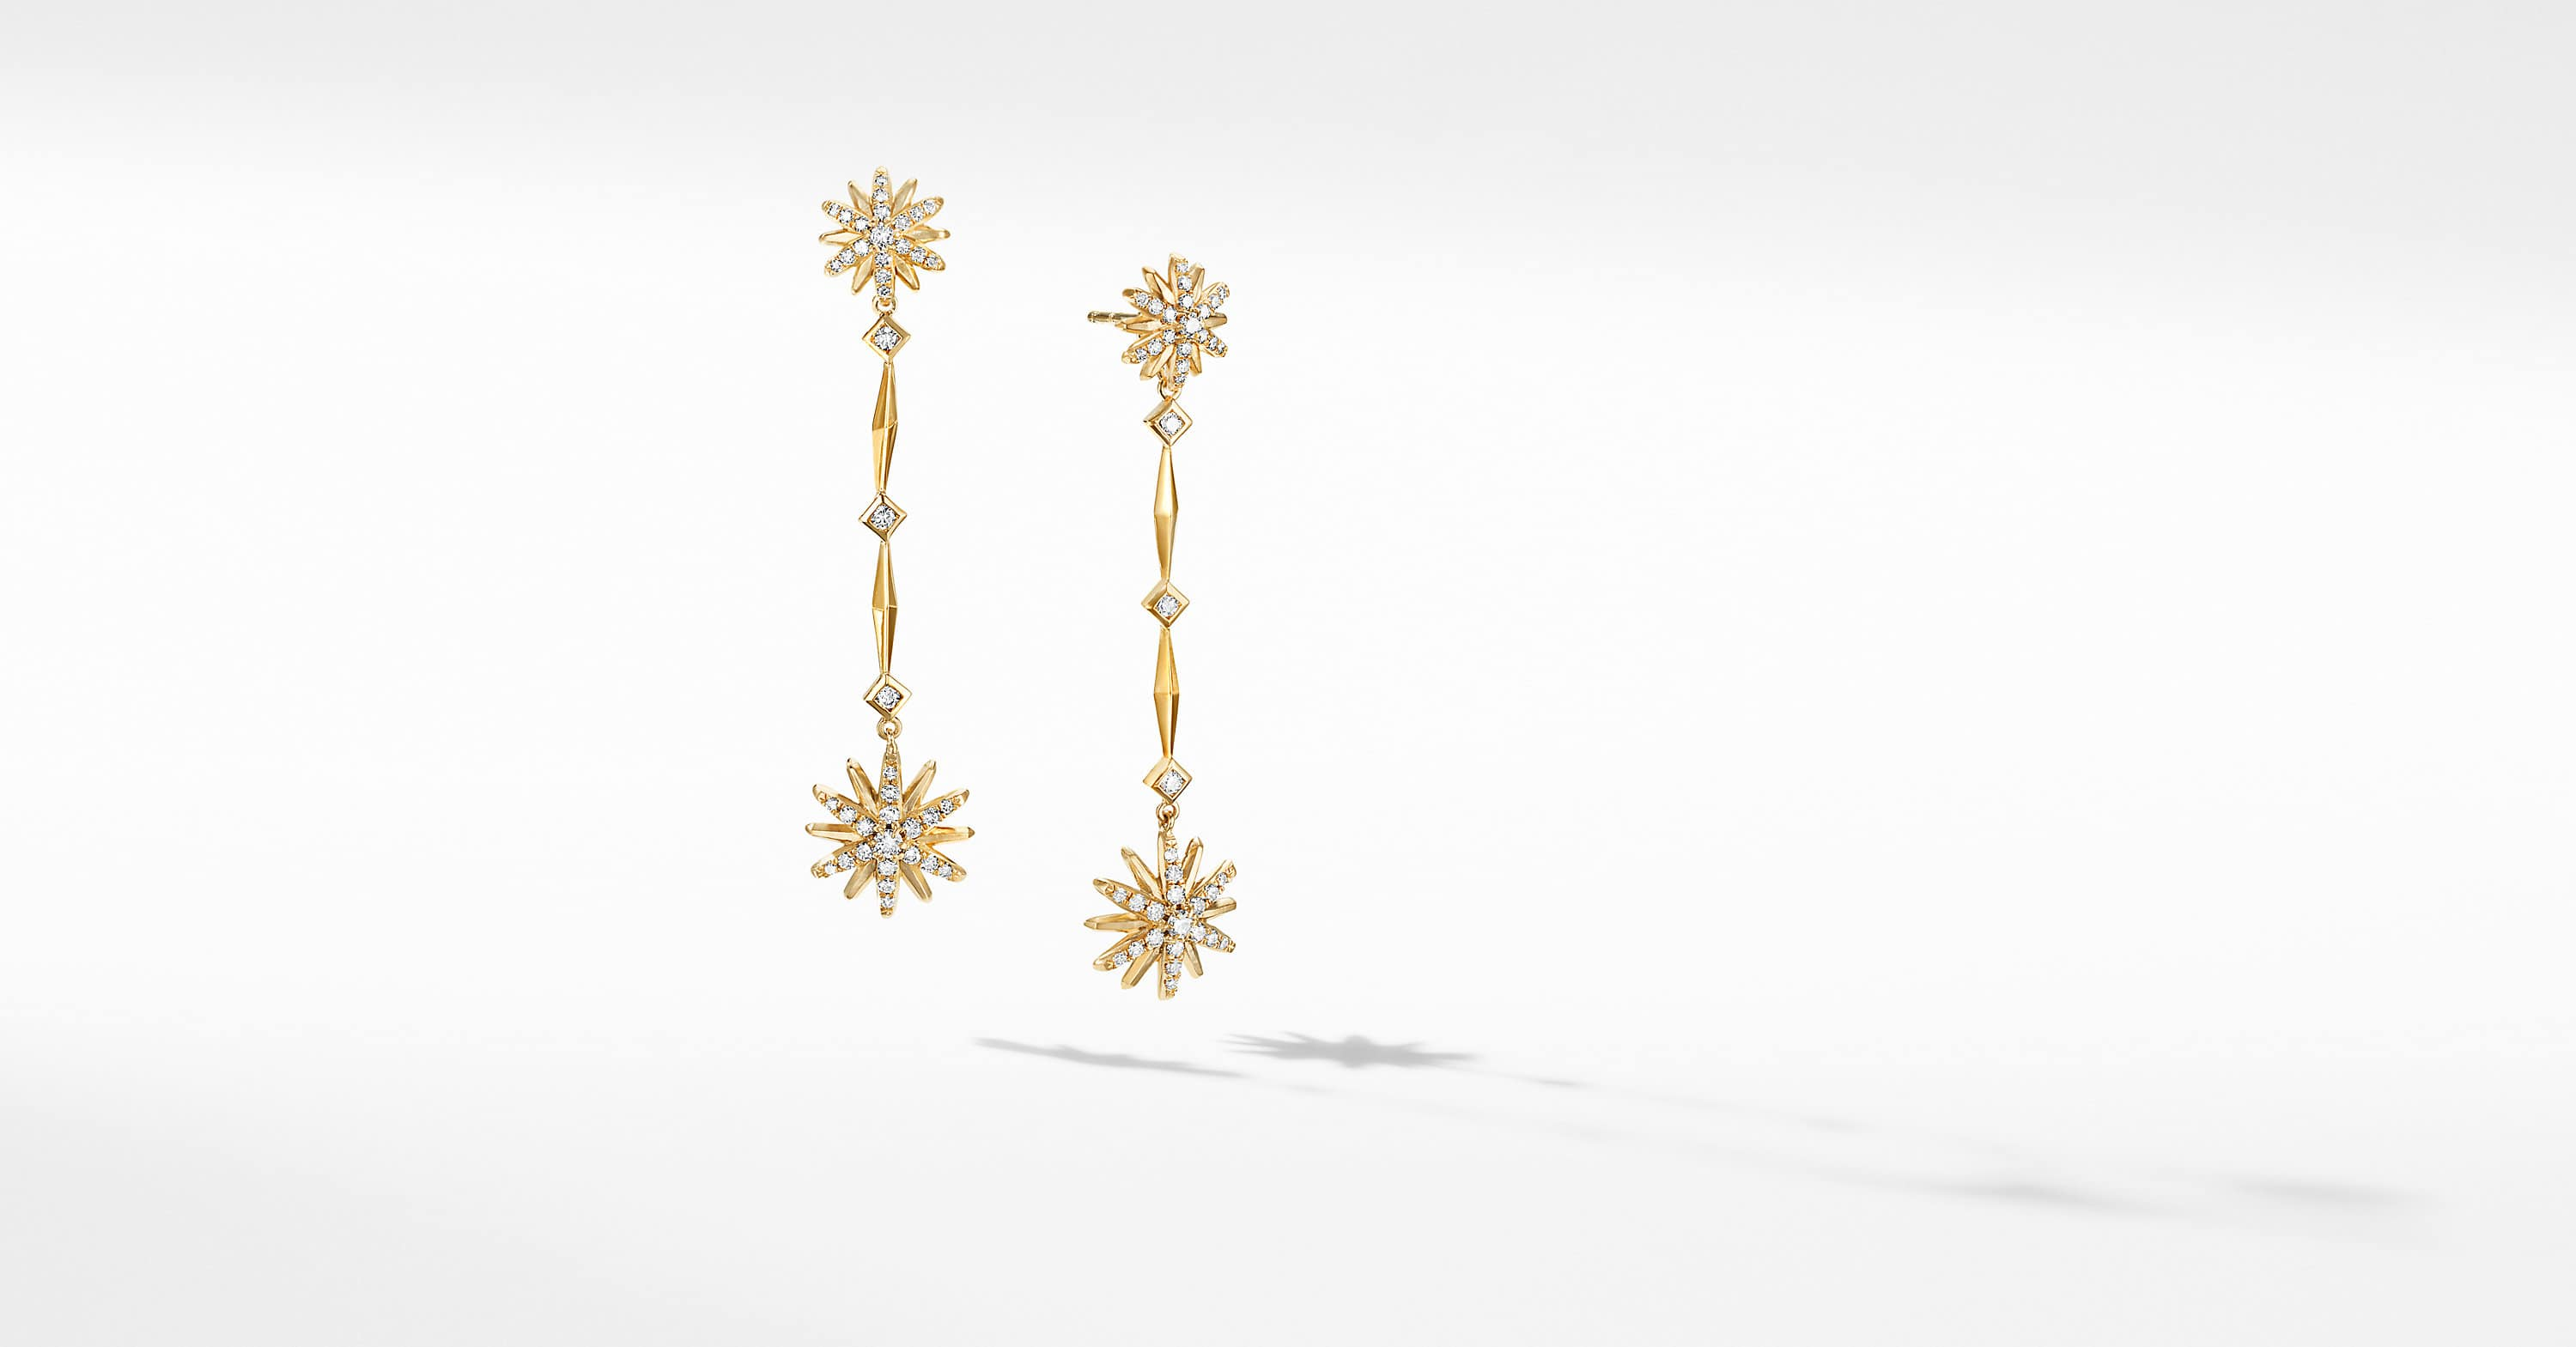 Starburst Long Drop Earrings in 18K Yellow Gold with Diamonds